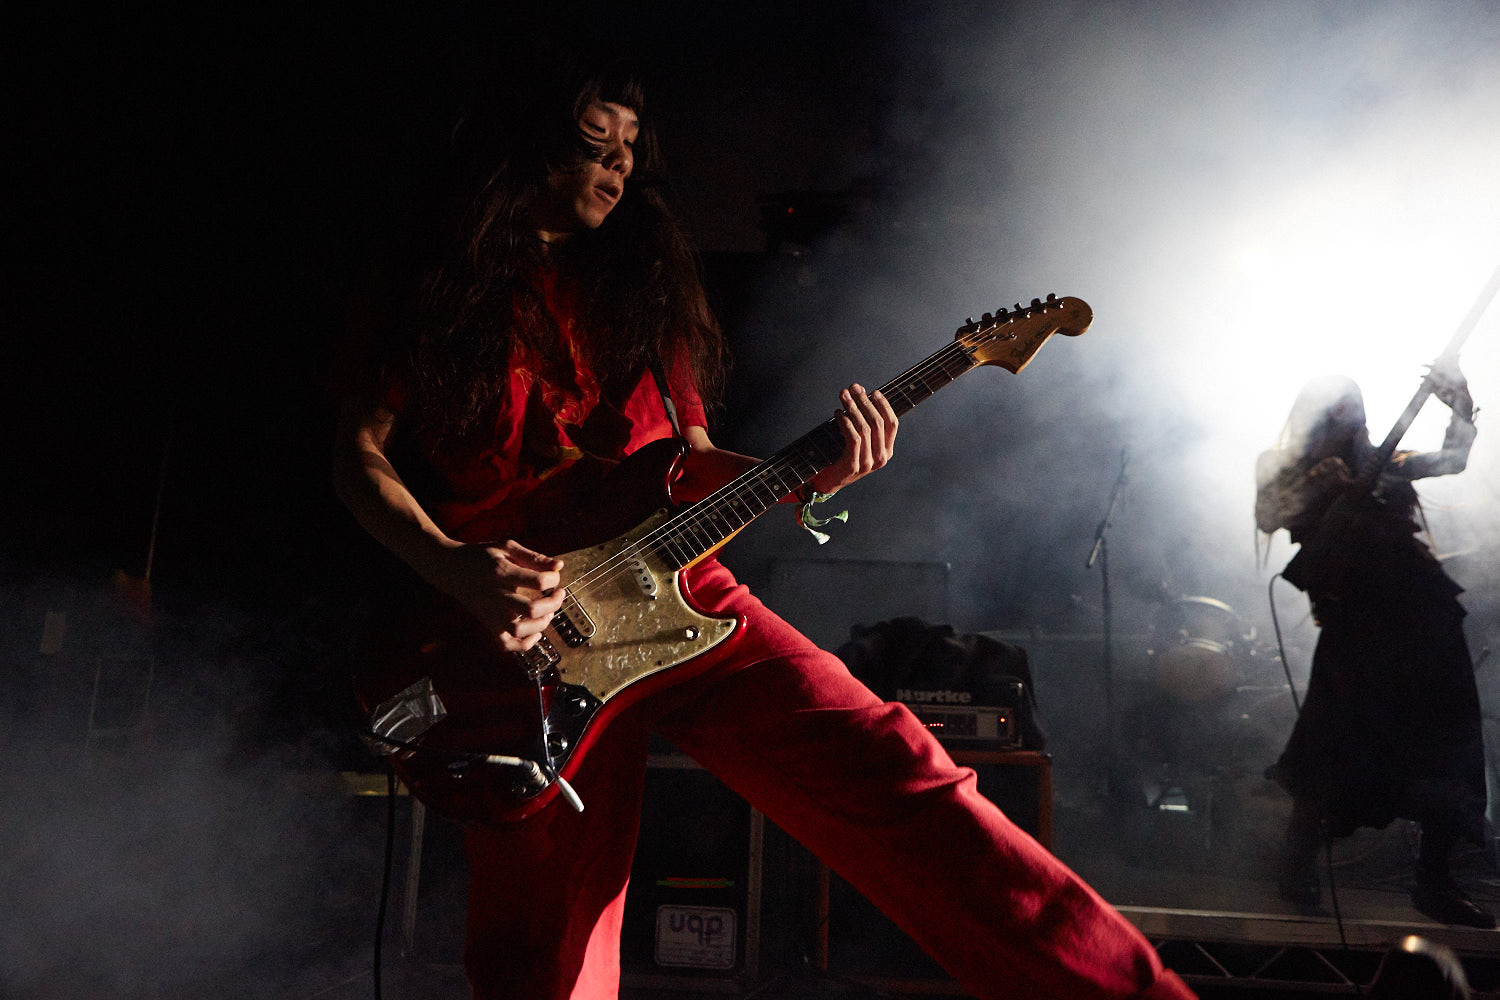 Bo Ningen performing on the Mavericks stage on the second day of Boardmasters music festival, Watergate Bay, Cornwall 2015